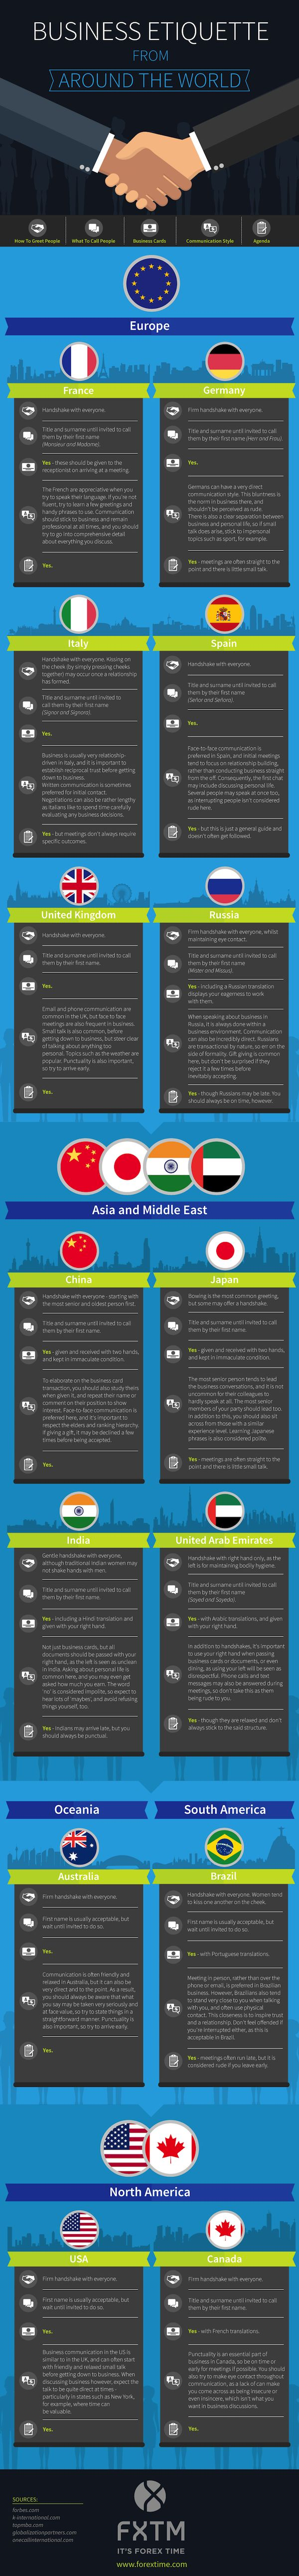 Infographic: Business Etiquette From Around The World - DesignTAXI.com